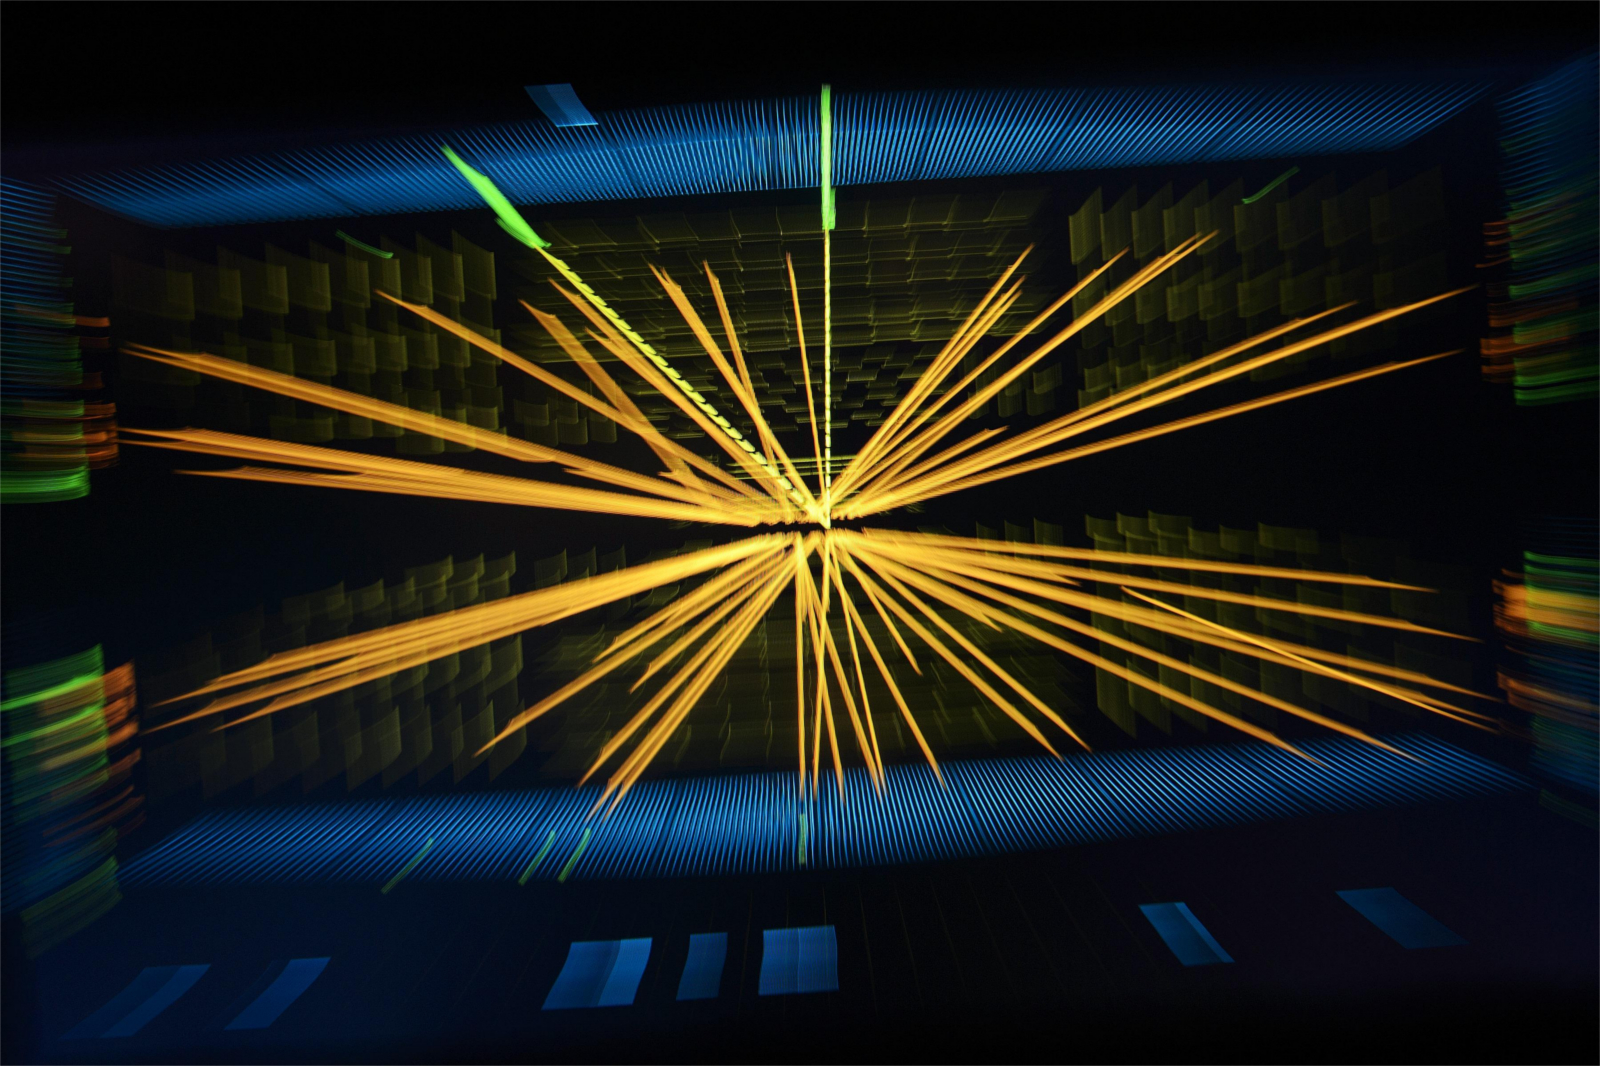 The Higgs Boson: Discovered or Nonexistent?